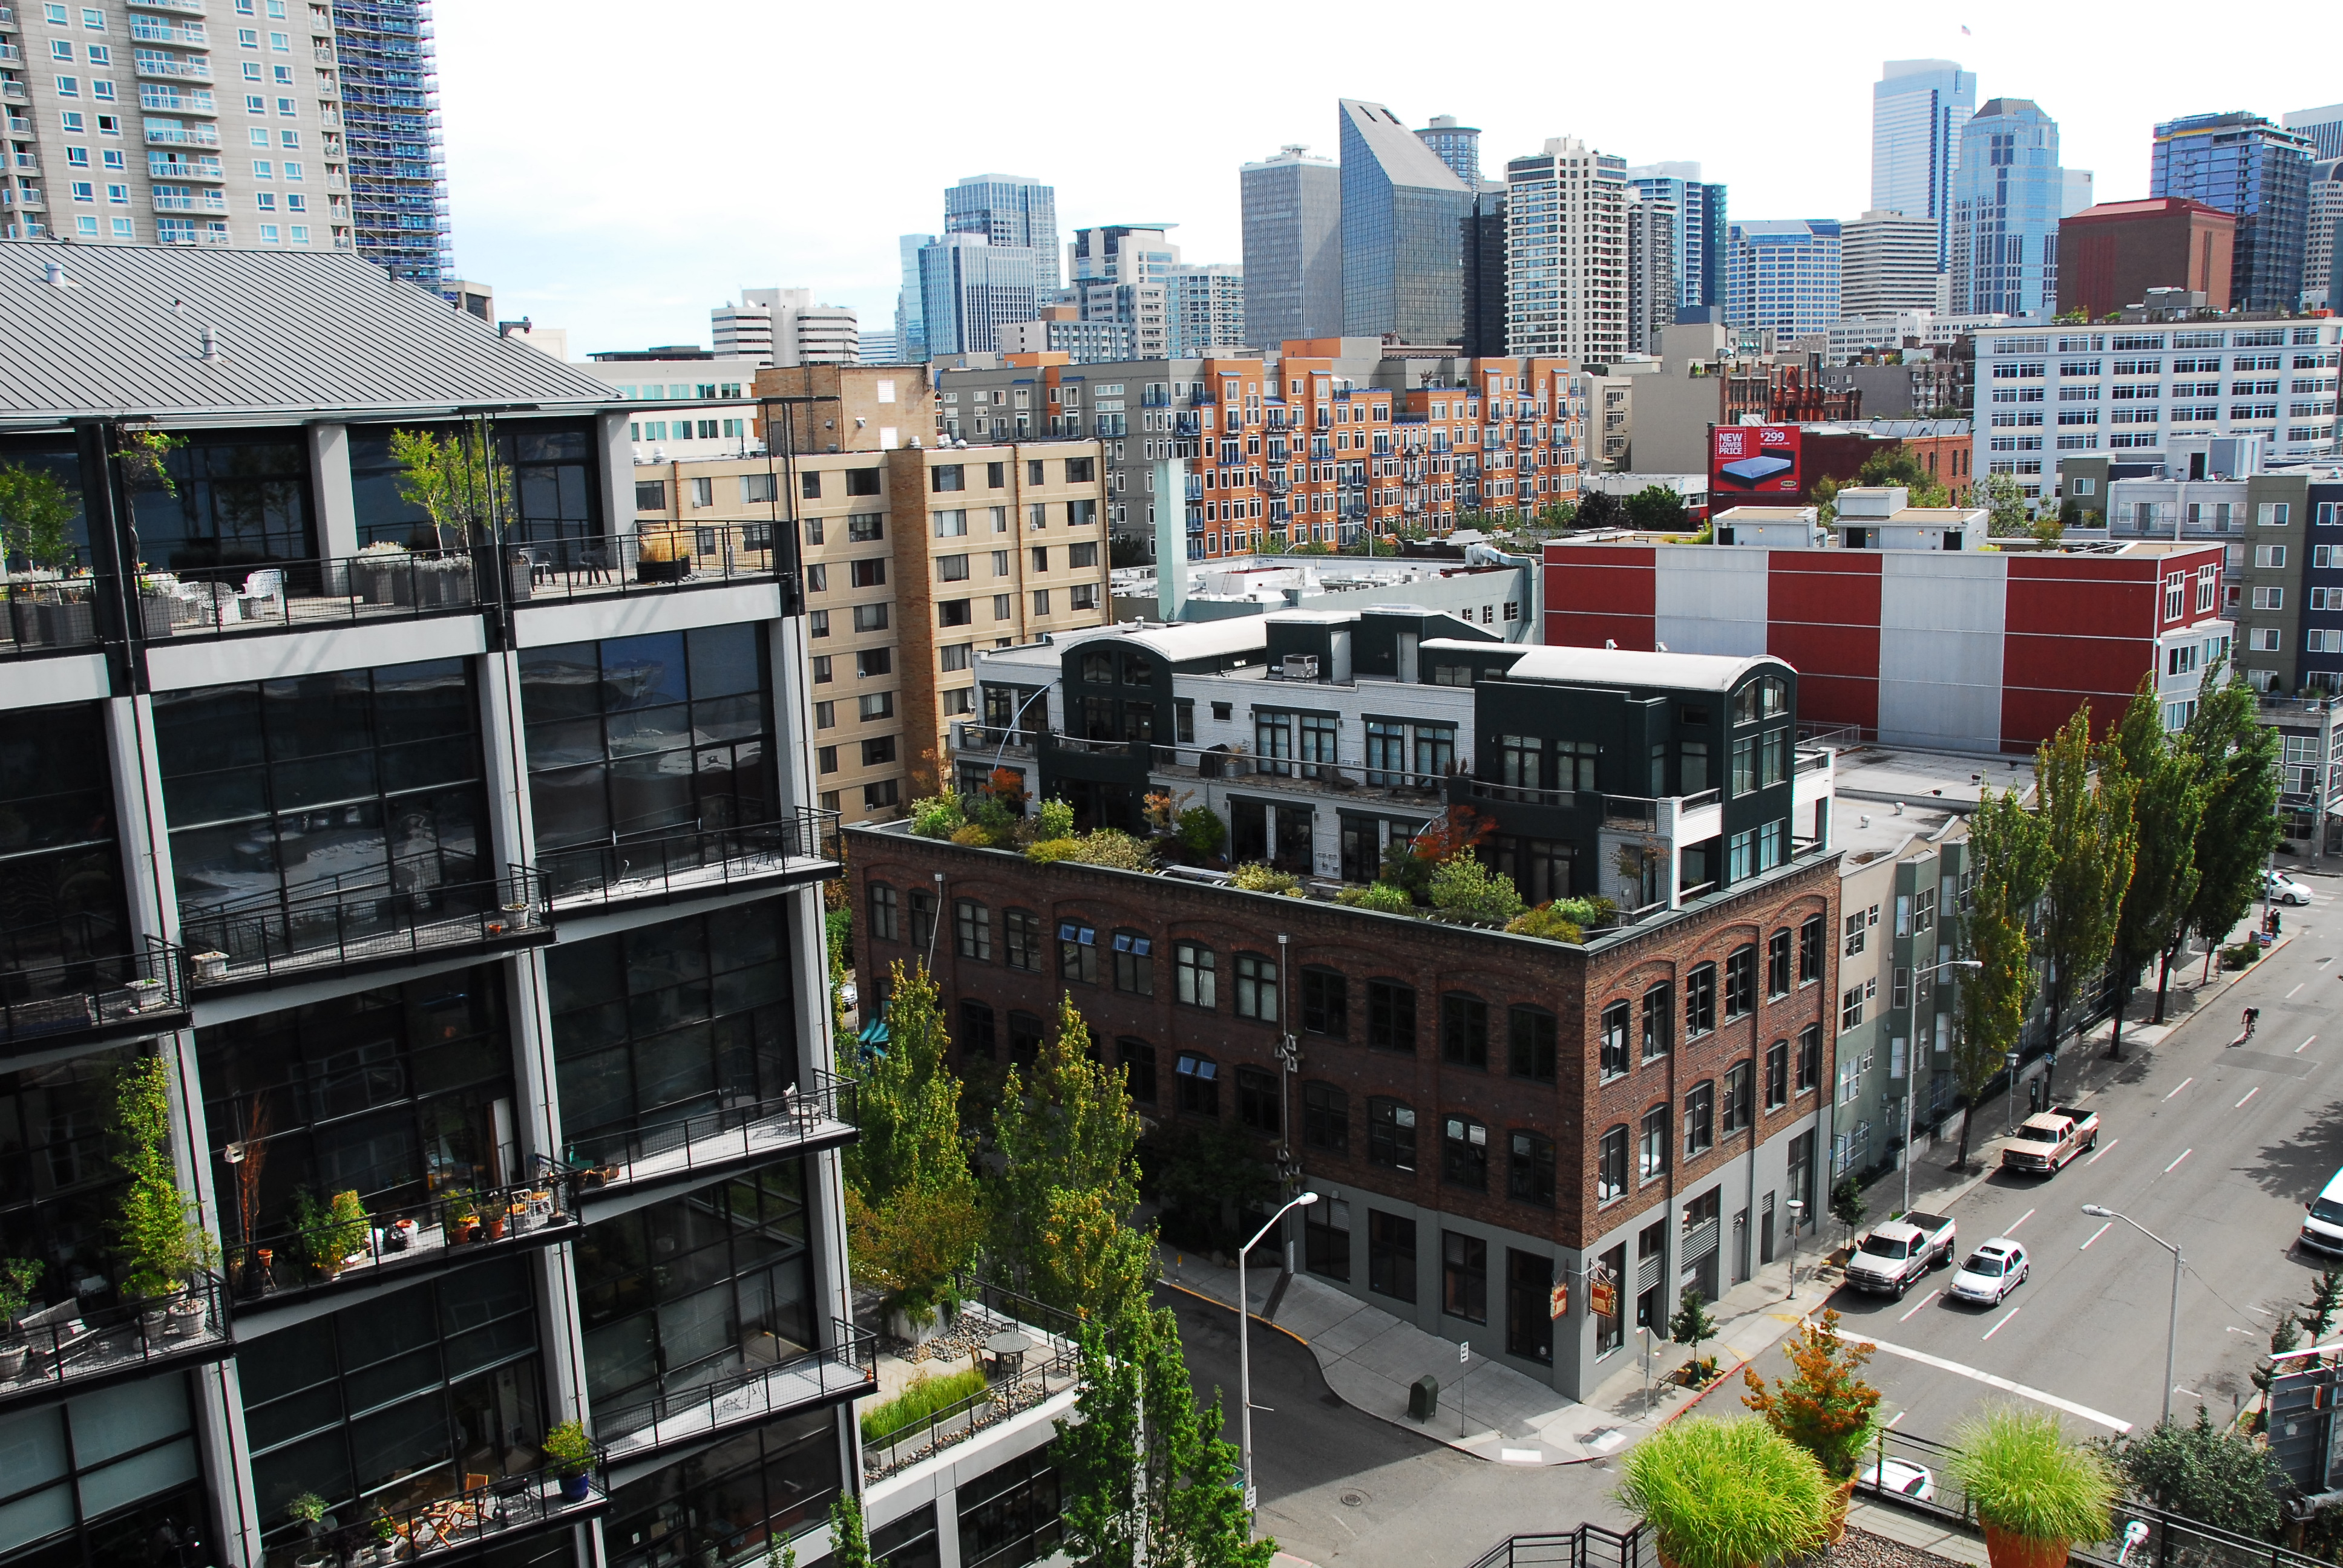 pcl construction restarts work on tower in belltown